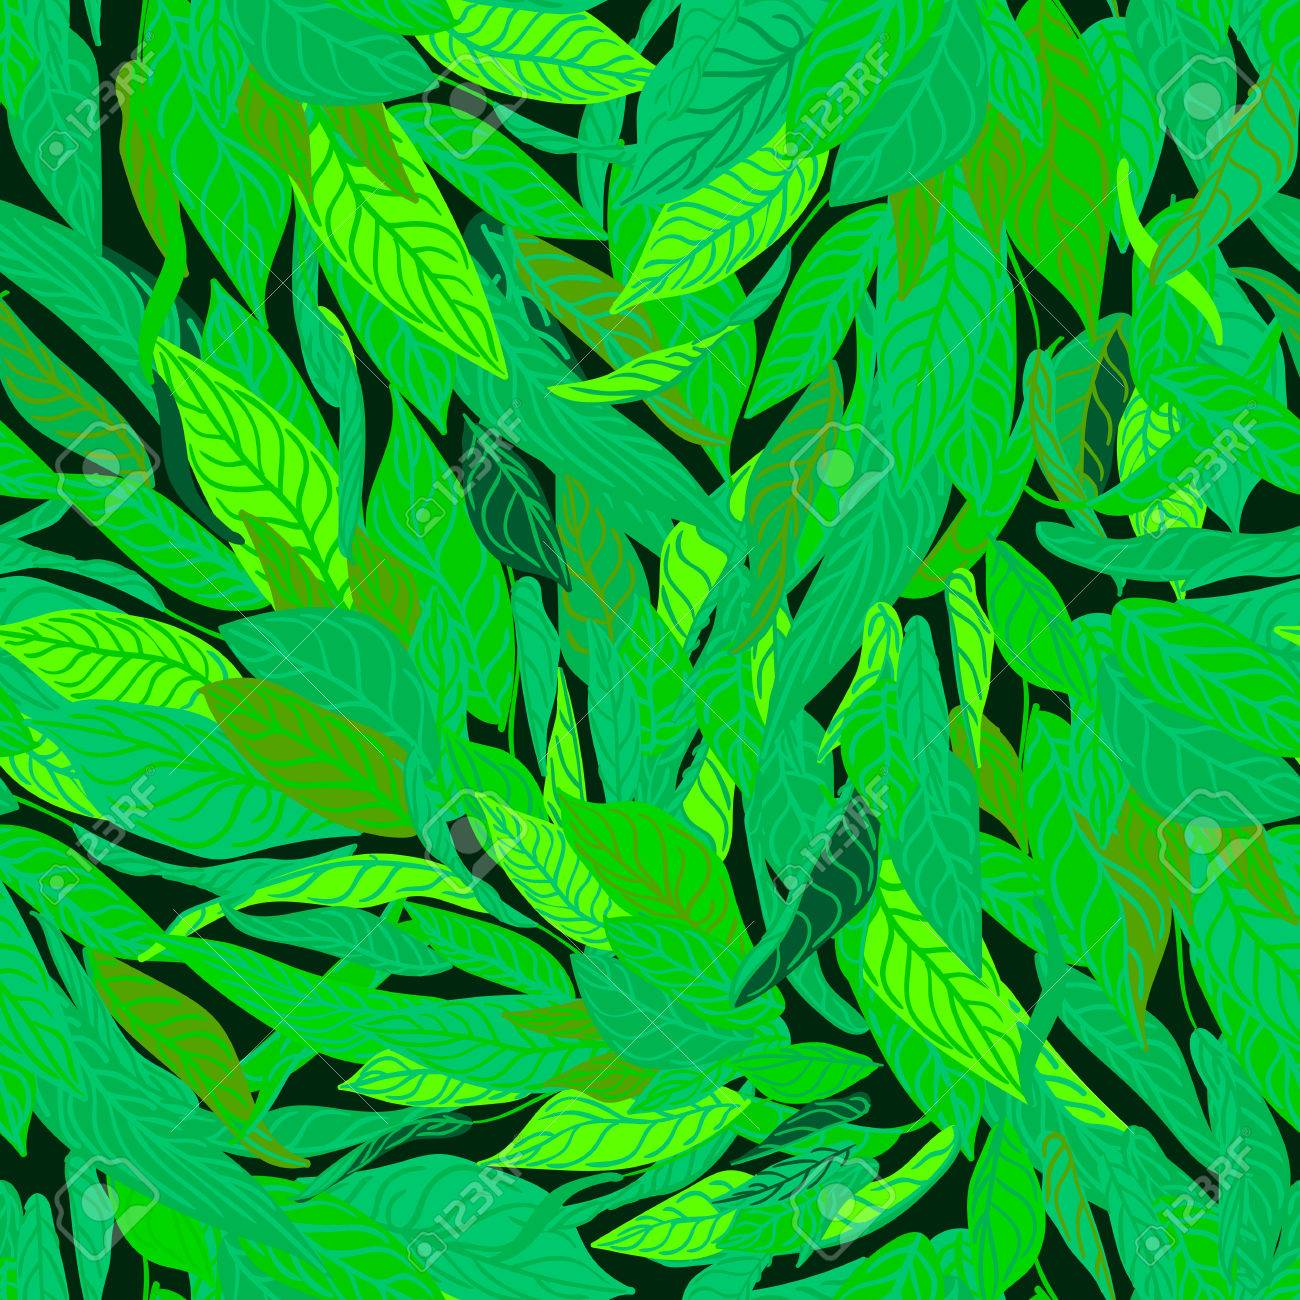 Colorful Seamless Background With Green Leaves Modern Illustration Can Be Used For Wallpaper